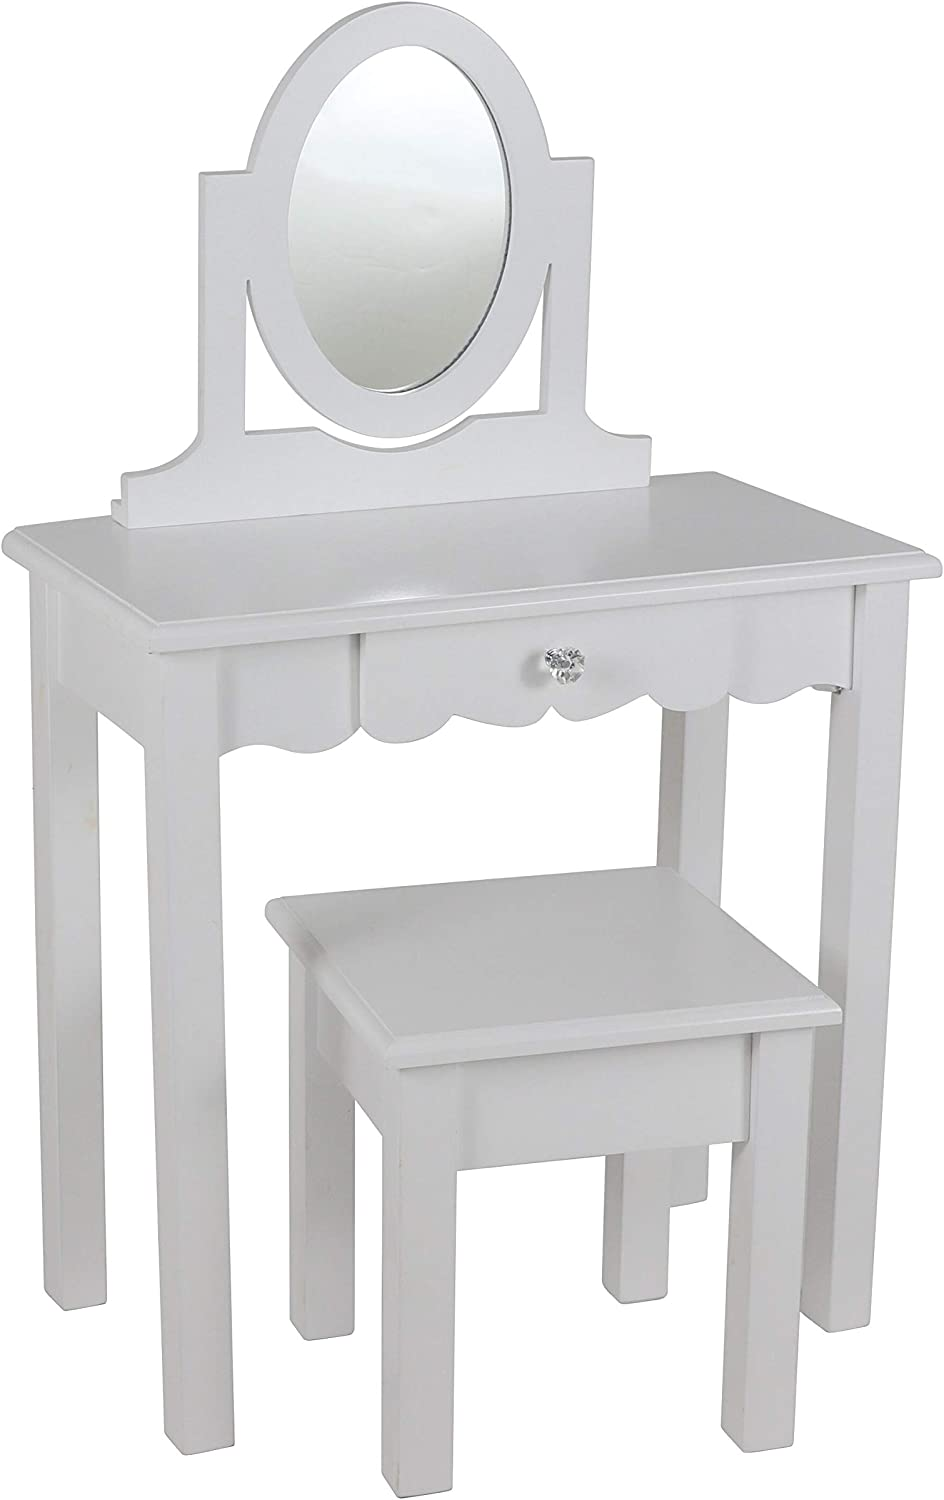 Decor Therapy Vivian White with 22x12x36 Super beauty product restock quality top Mirror Vanity Discount mail order